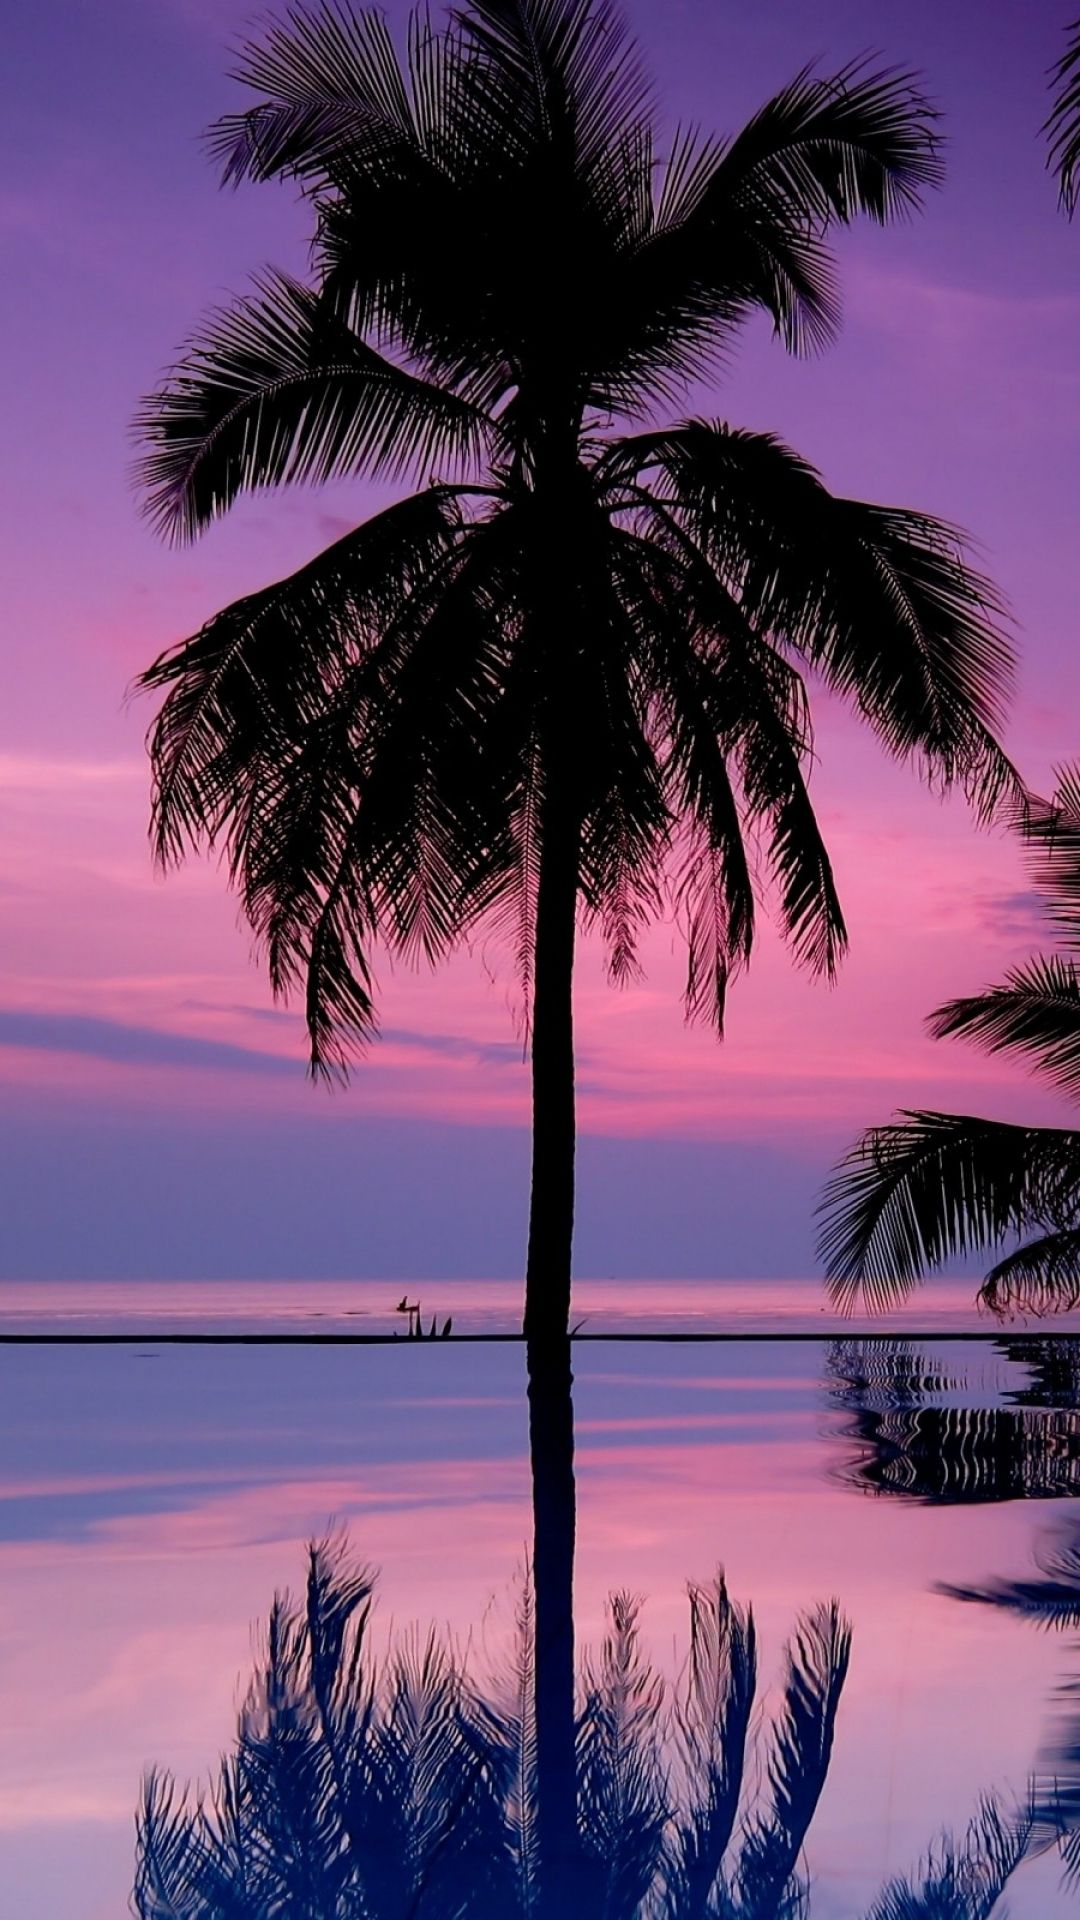 Iphone Background Palm Trees - HD Wallpaper